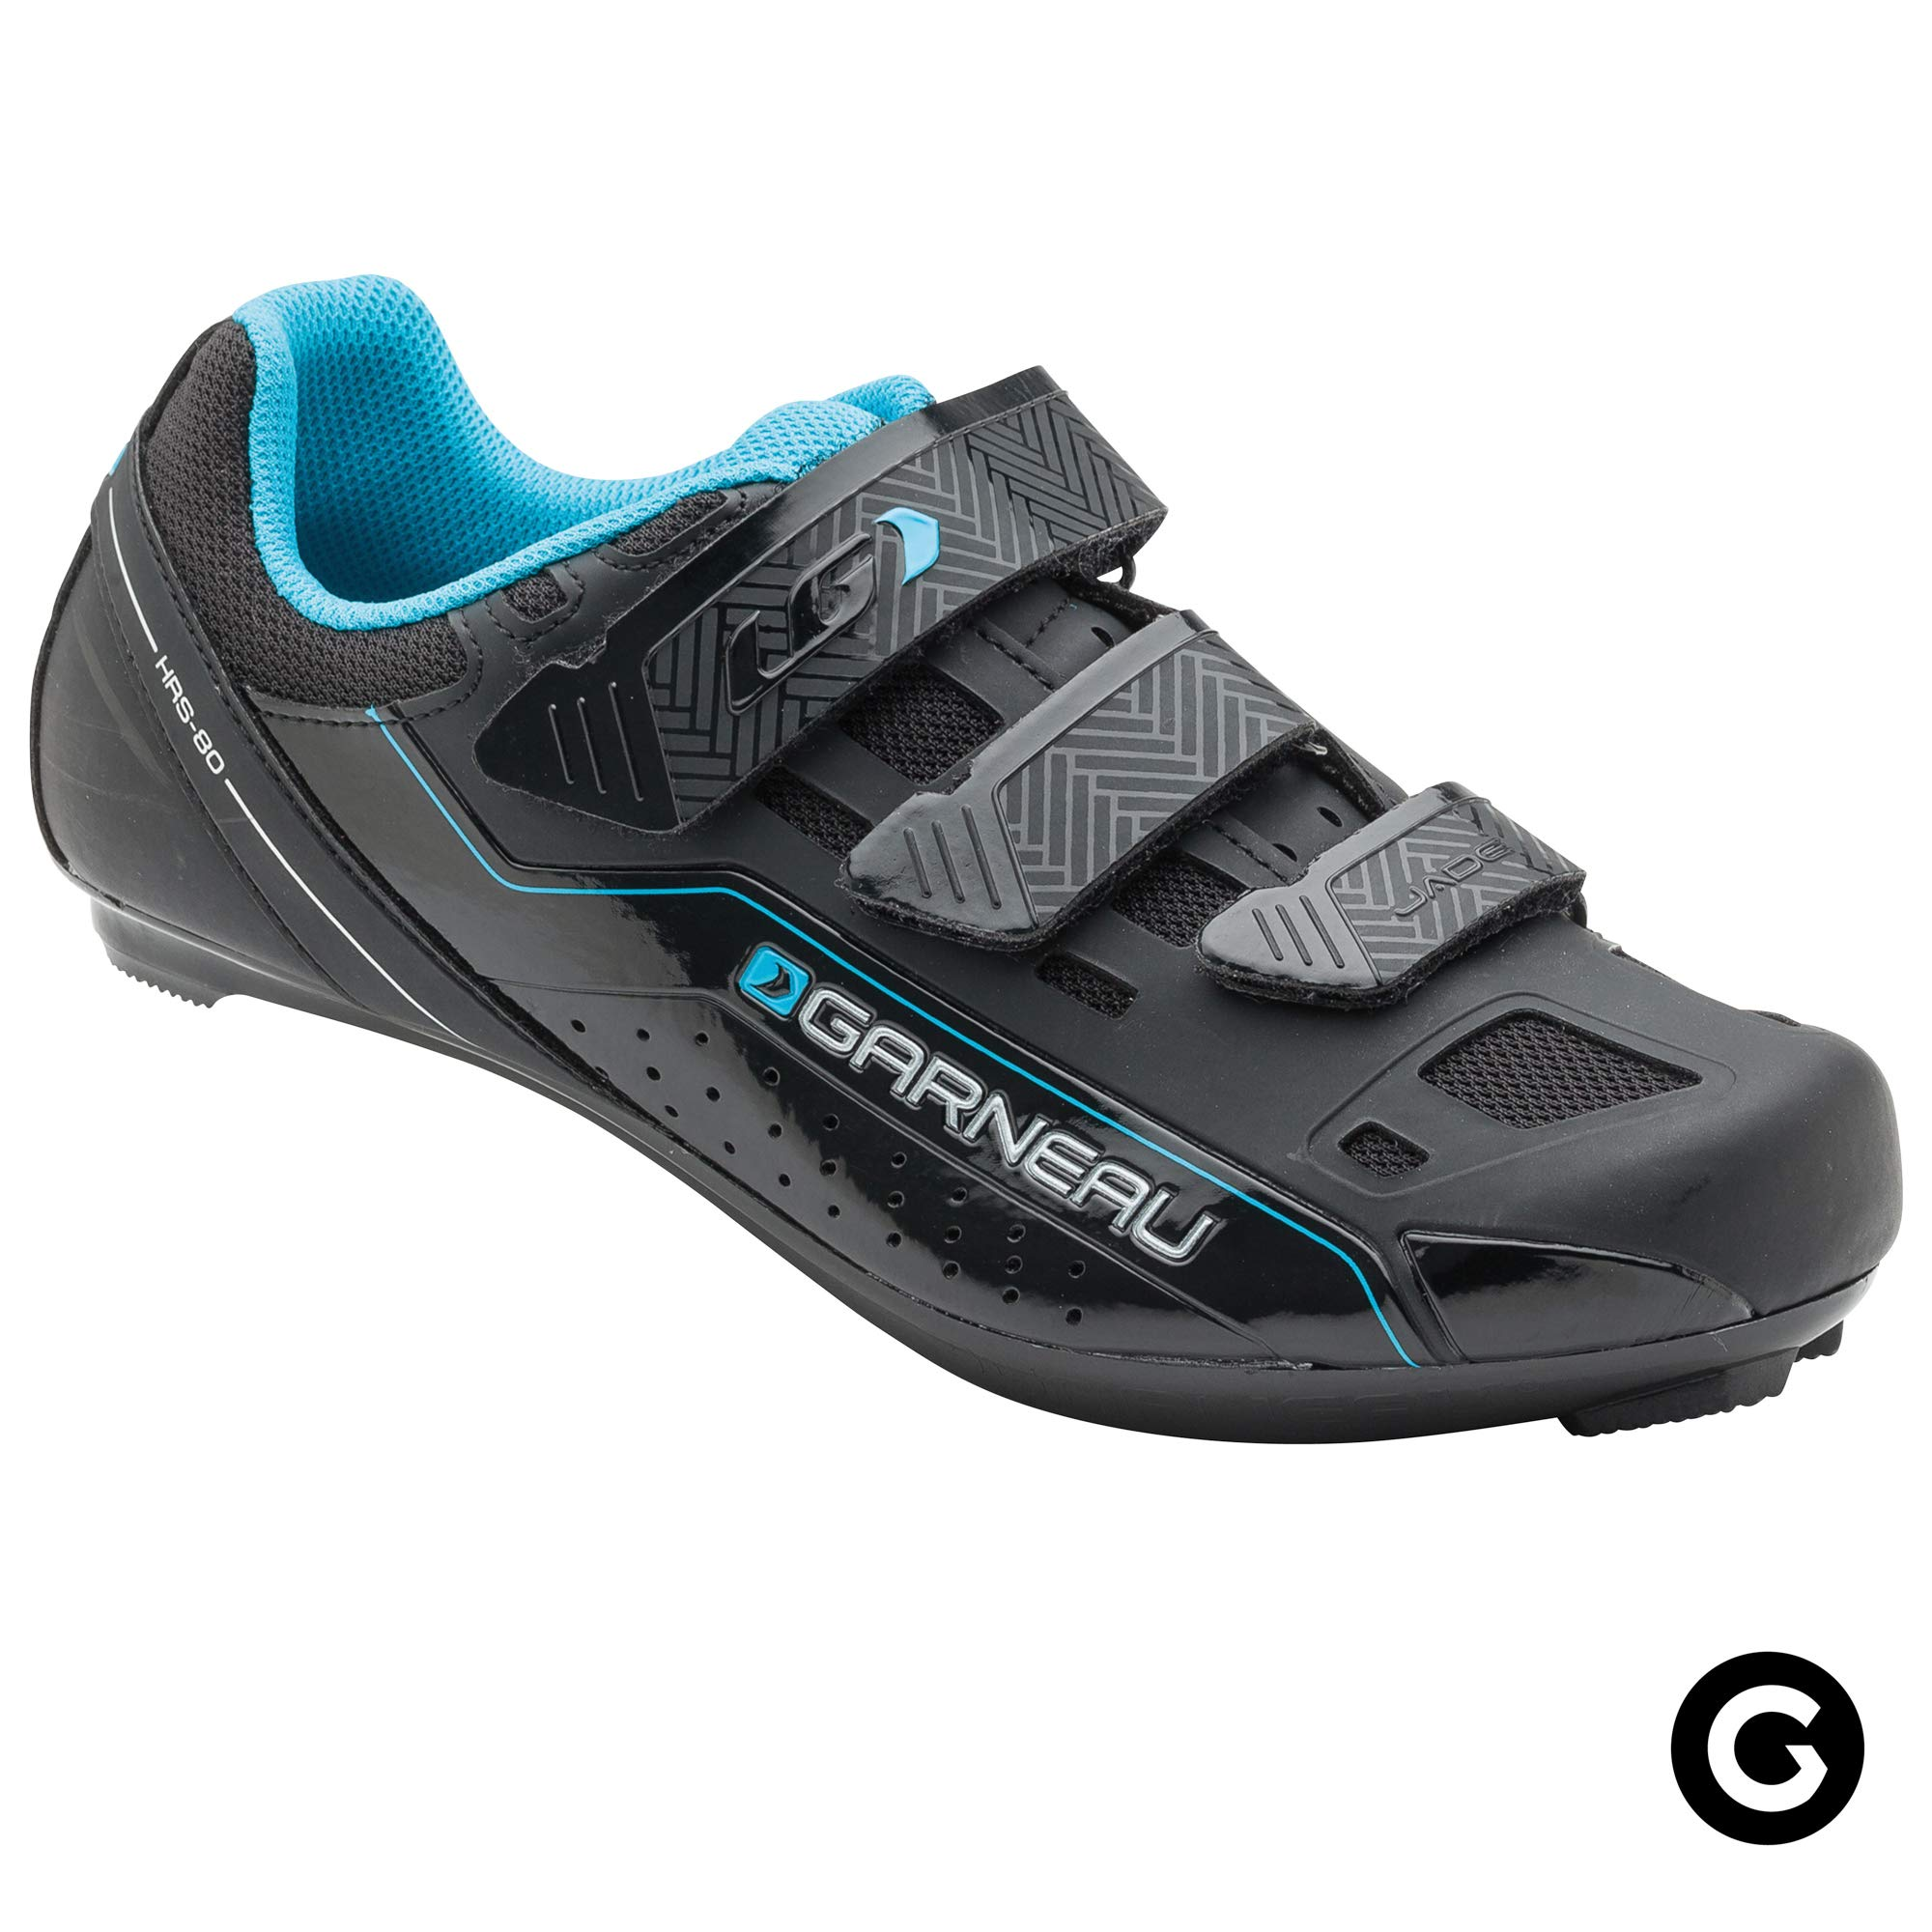 Louis Garneau Women's Jade Bike Shoes for Commuting and Indoor Cycling, Compatible with SPD, Look and All Road Pedals, Black, US (6), EU (36) by Louis Garneau